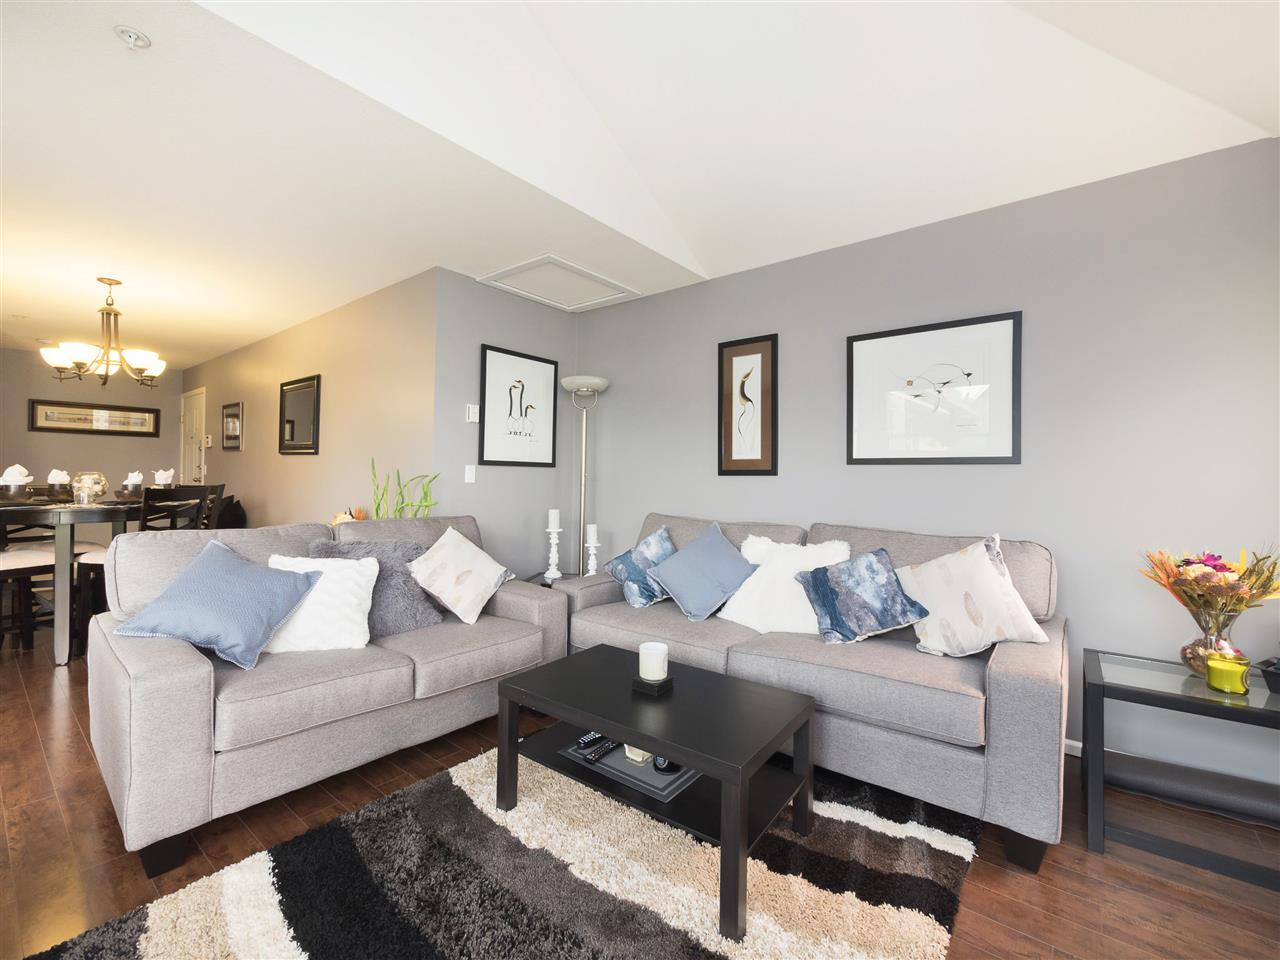 Condo Apartment at 301 1558 GRANT AVENUE, Unit 301, Port Coquitlam, British Columbia. Image 2